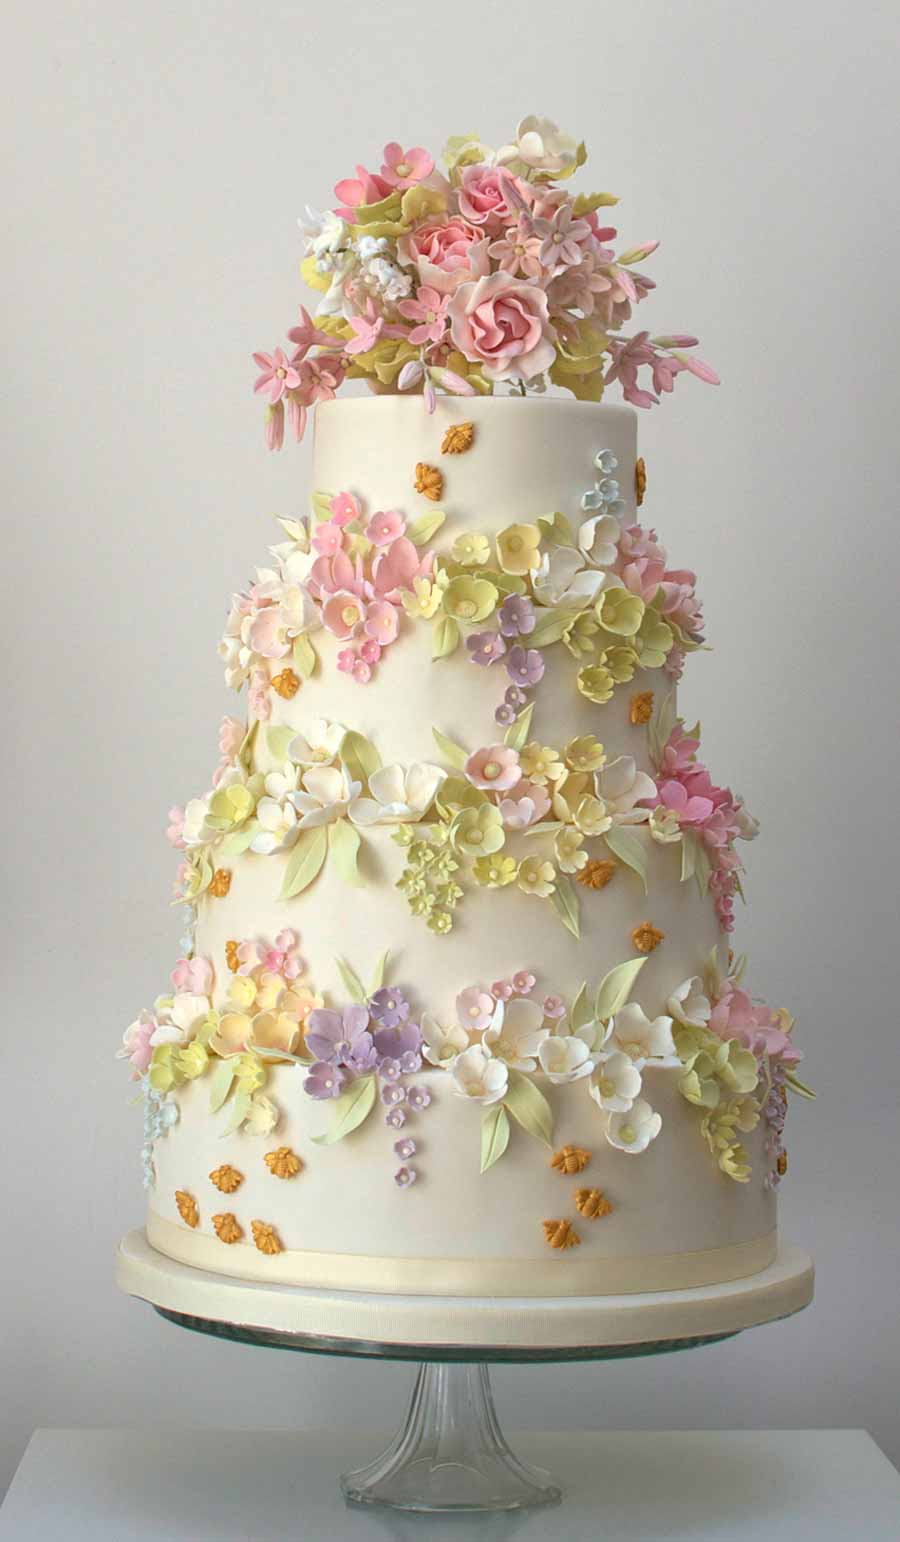 Cake Images With Flowers : Top 50 UK Wedding Cake Designers